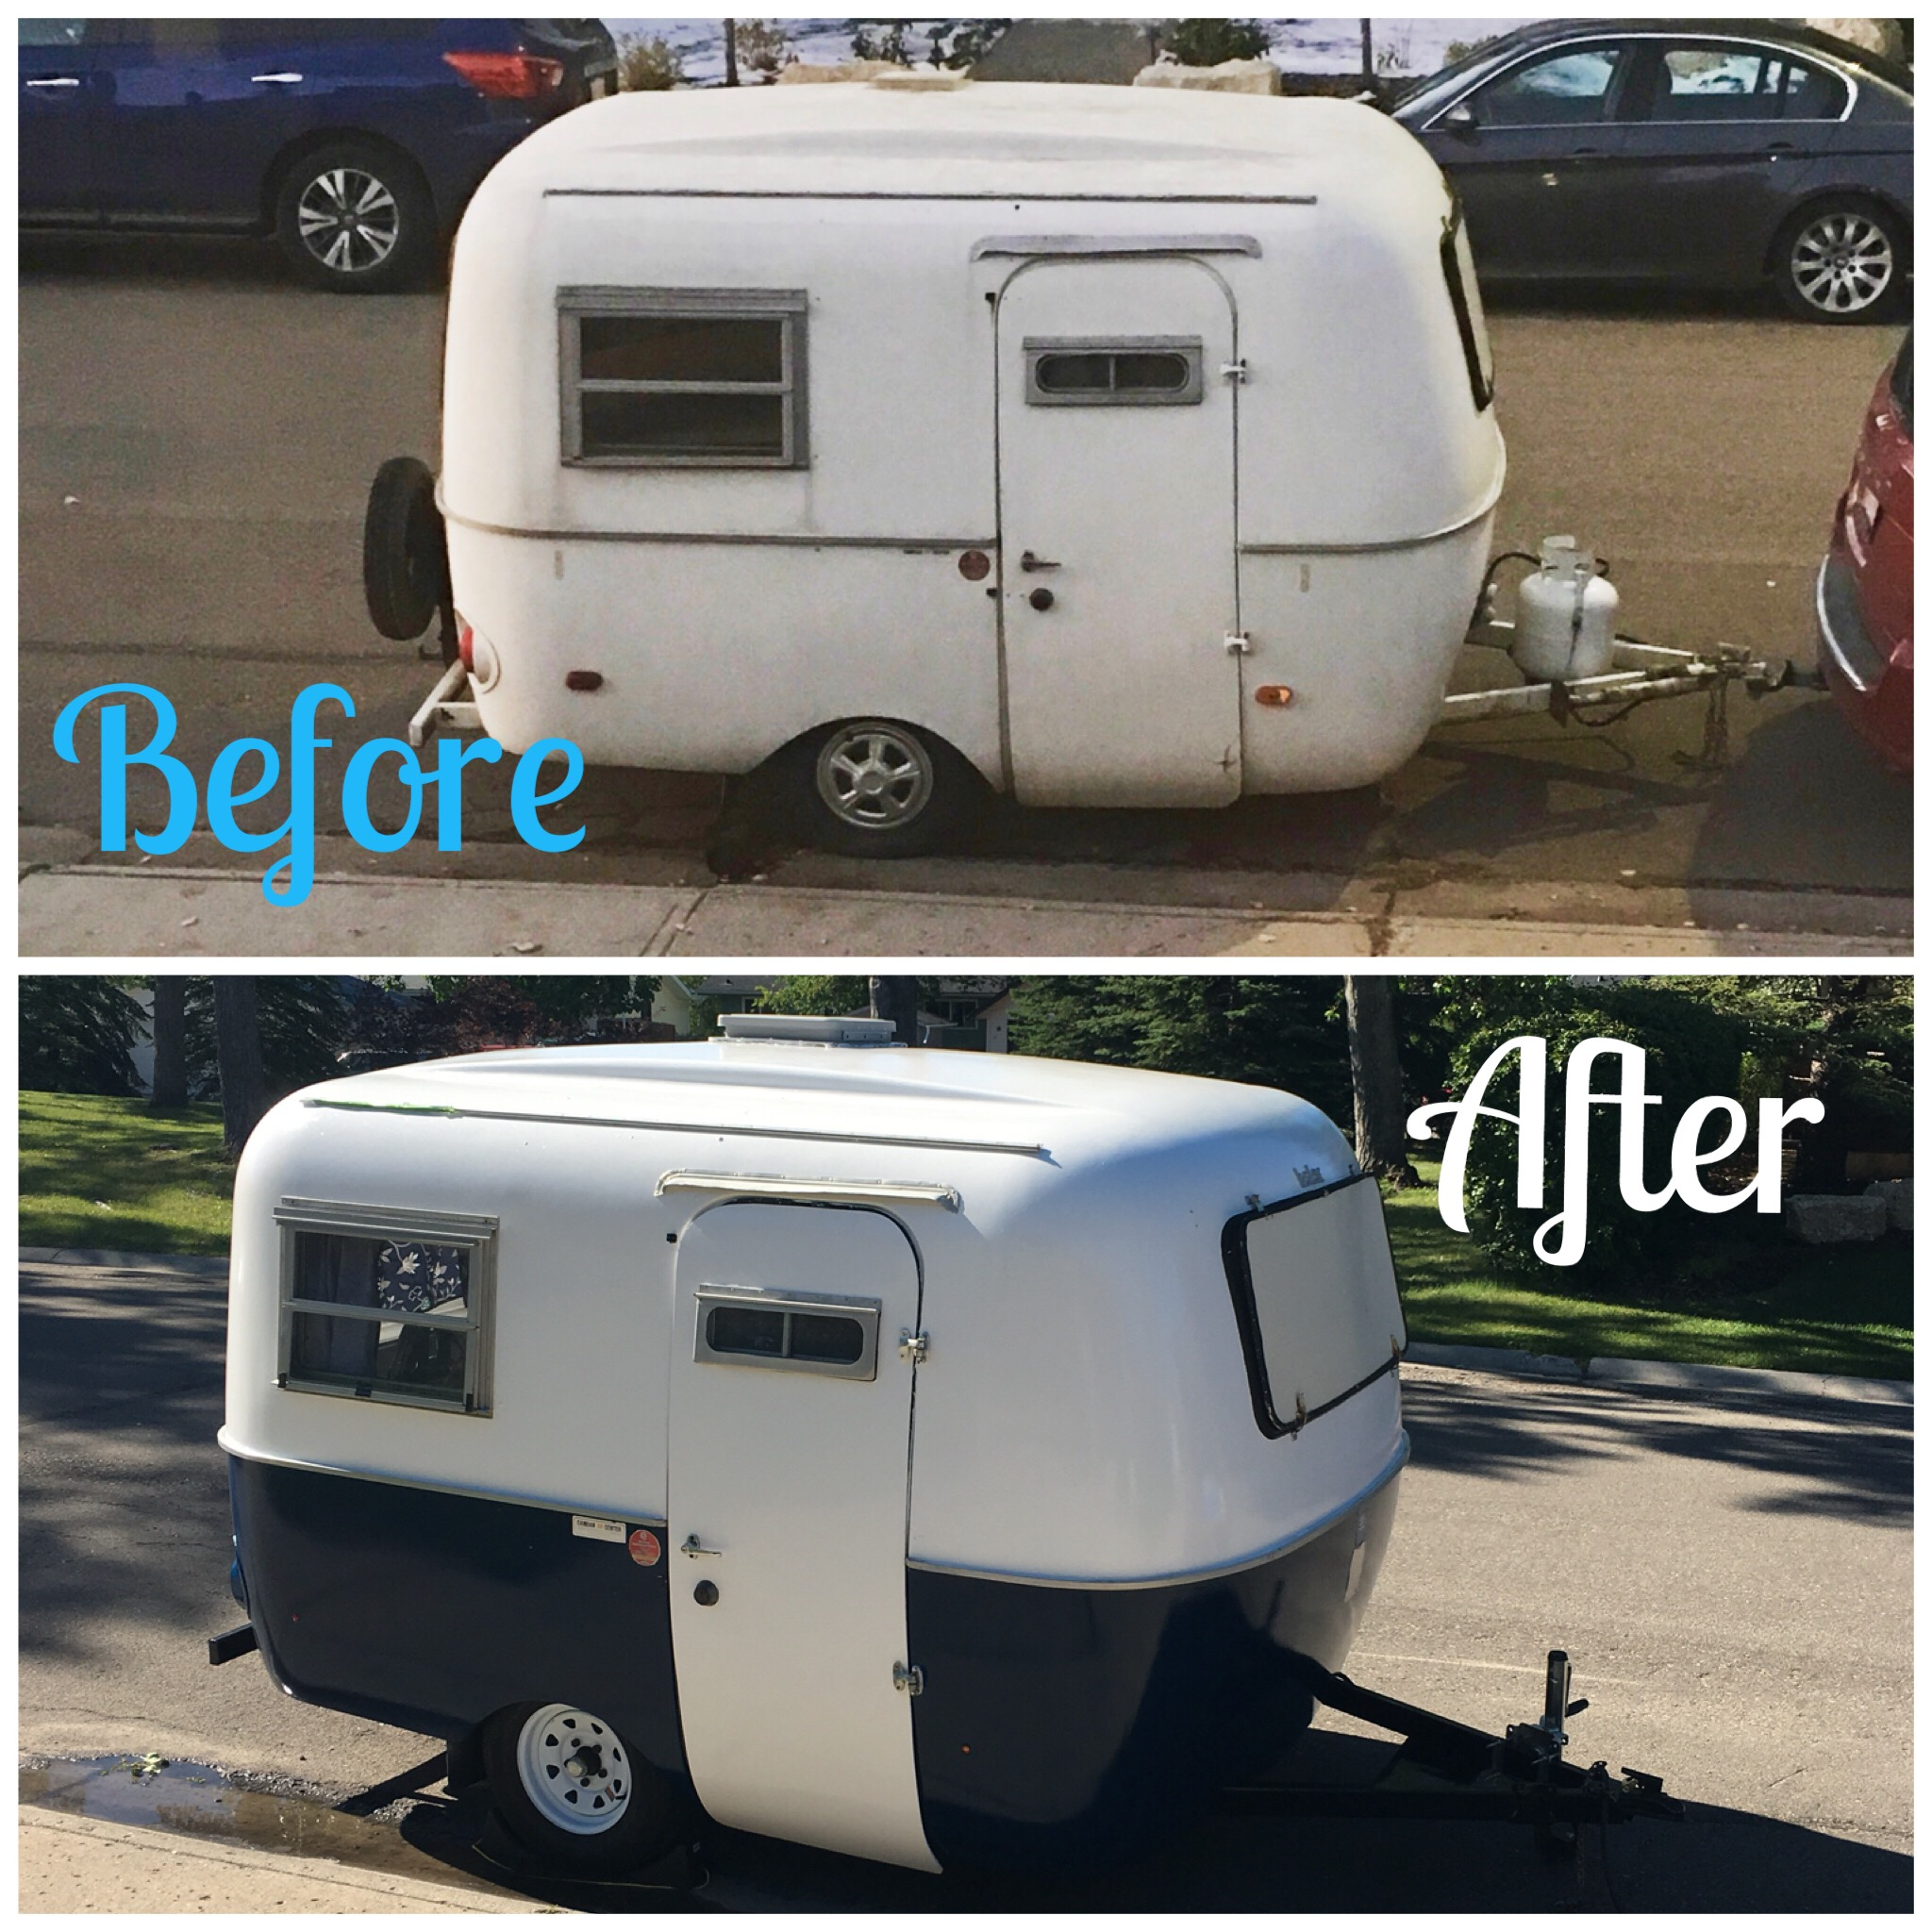 Boler Renovation Resources